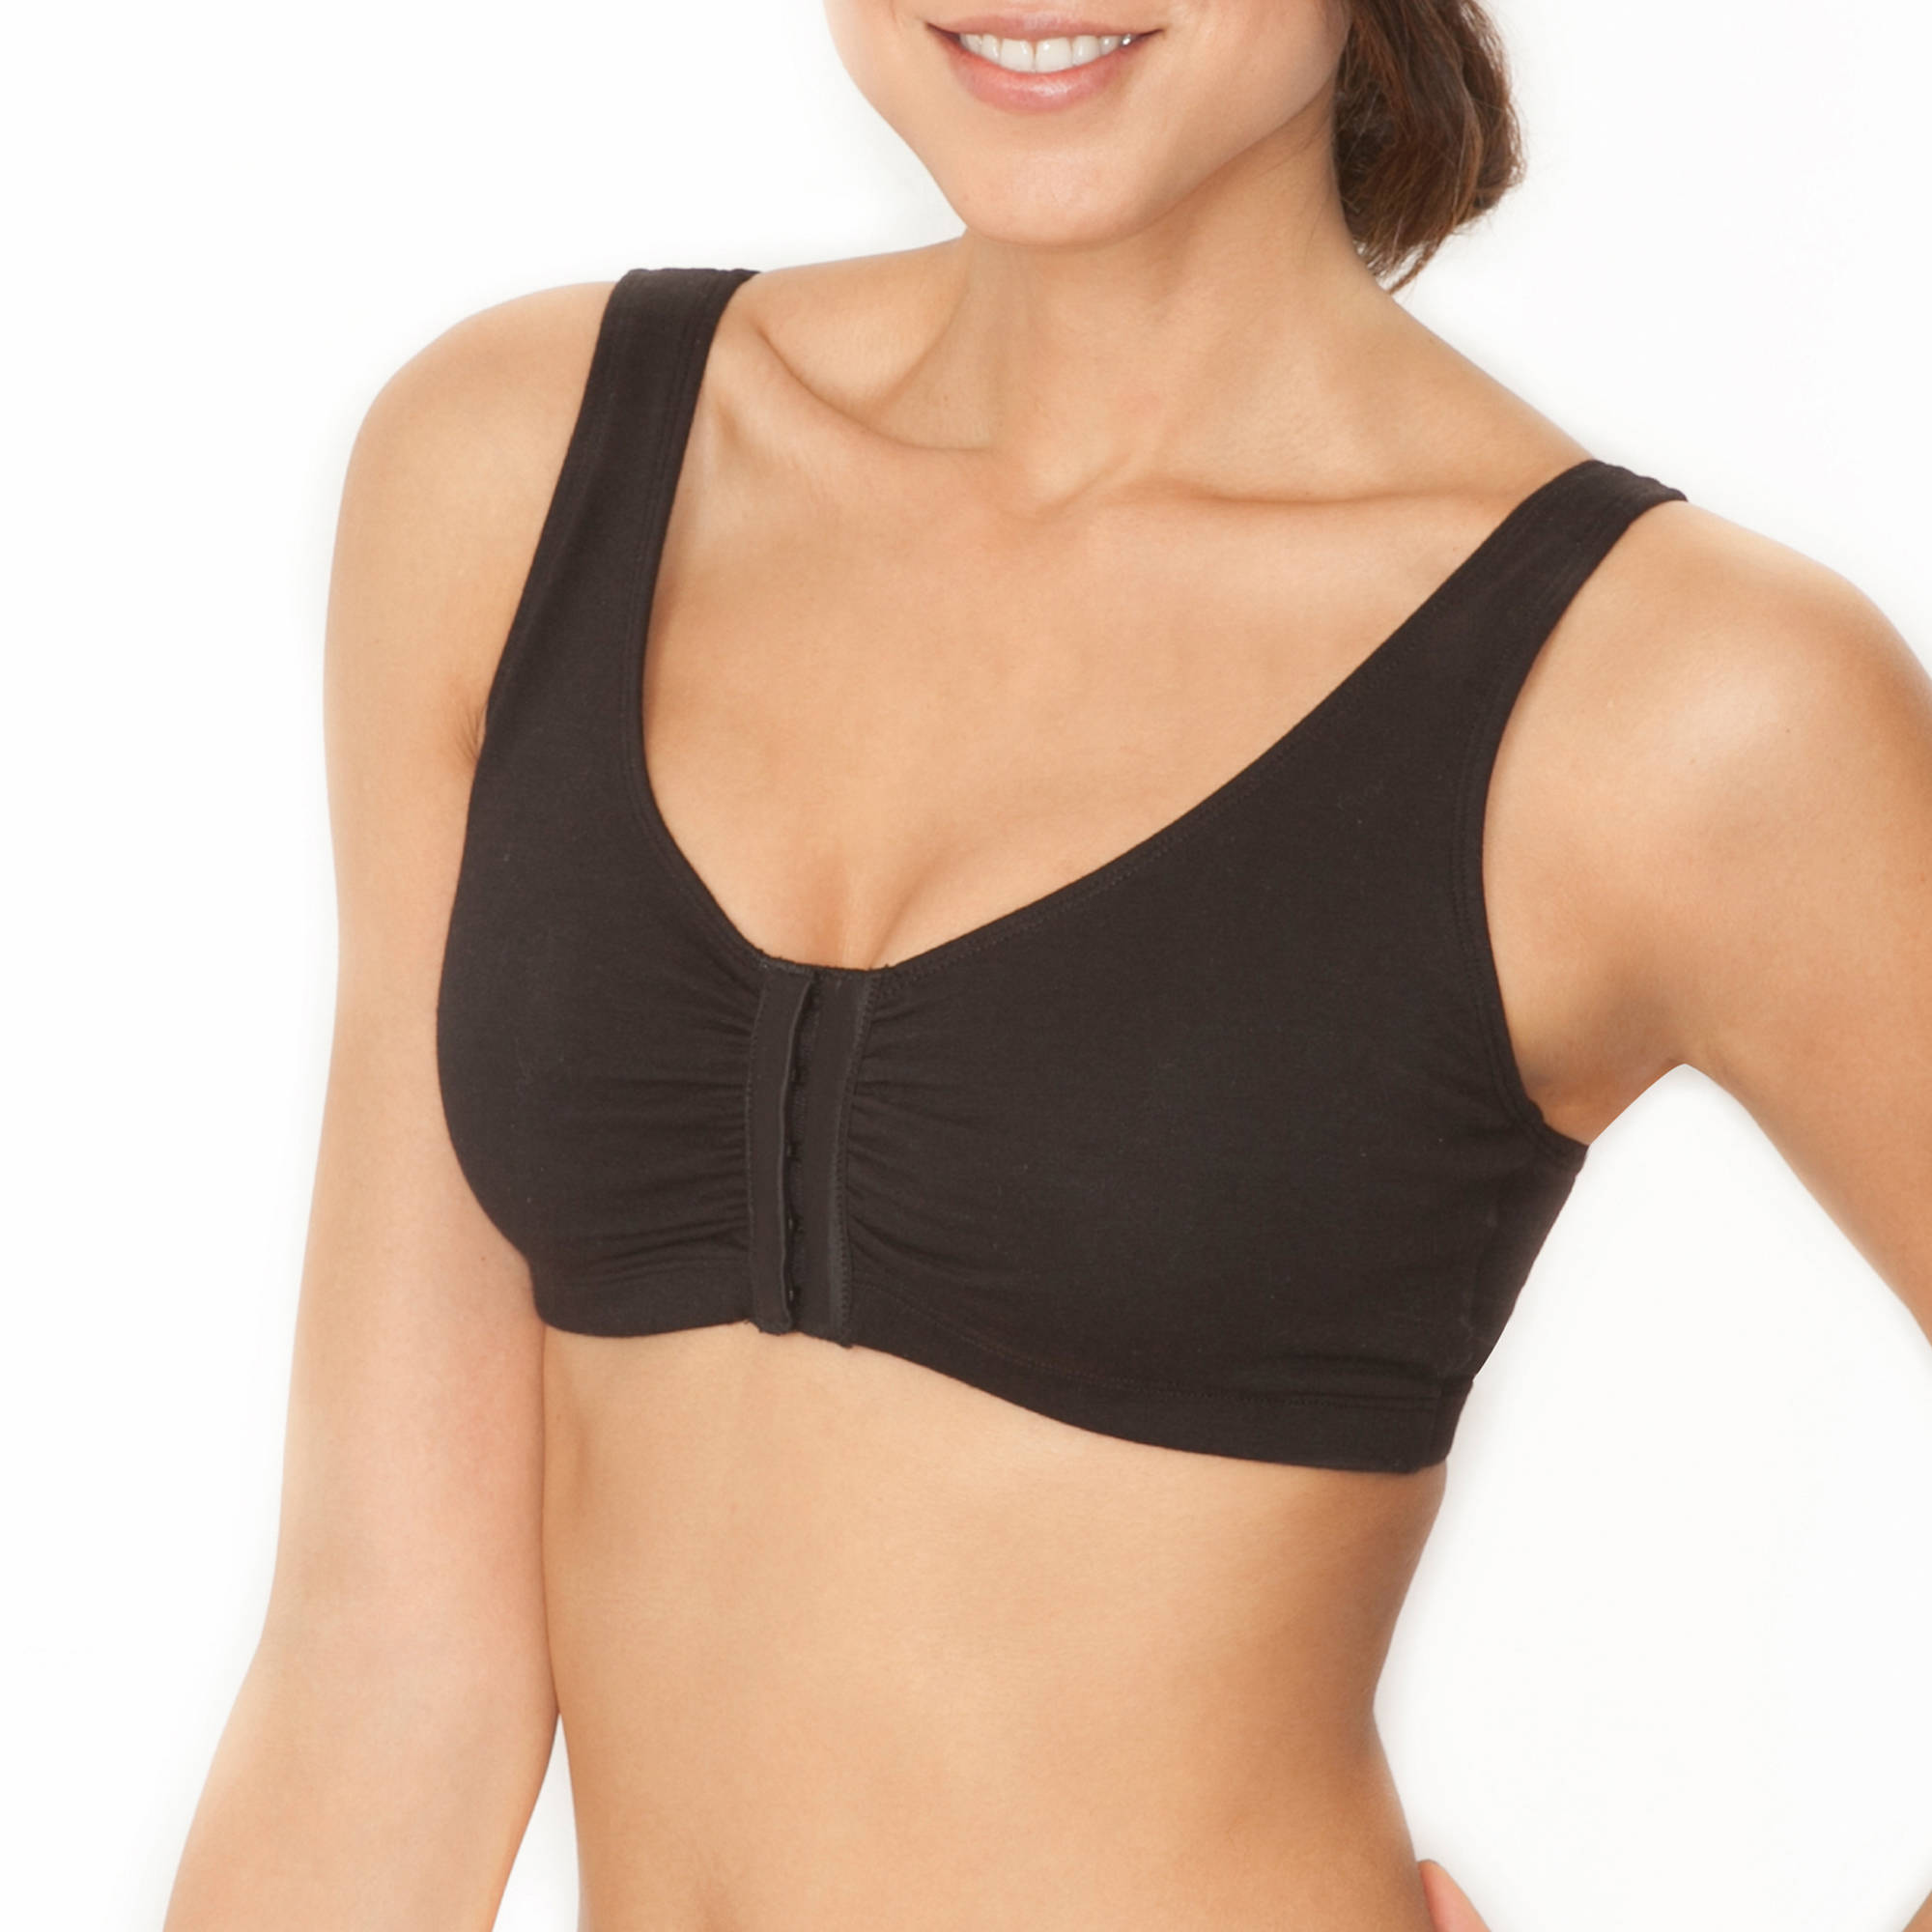 Fruit of the Loom - Comfort Front-Close Sports Bra, Style 96014